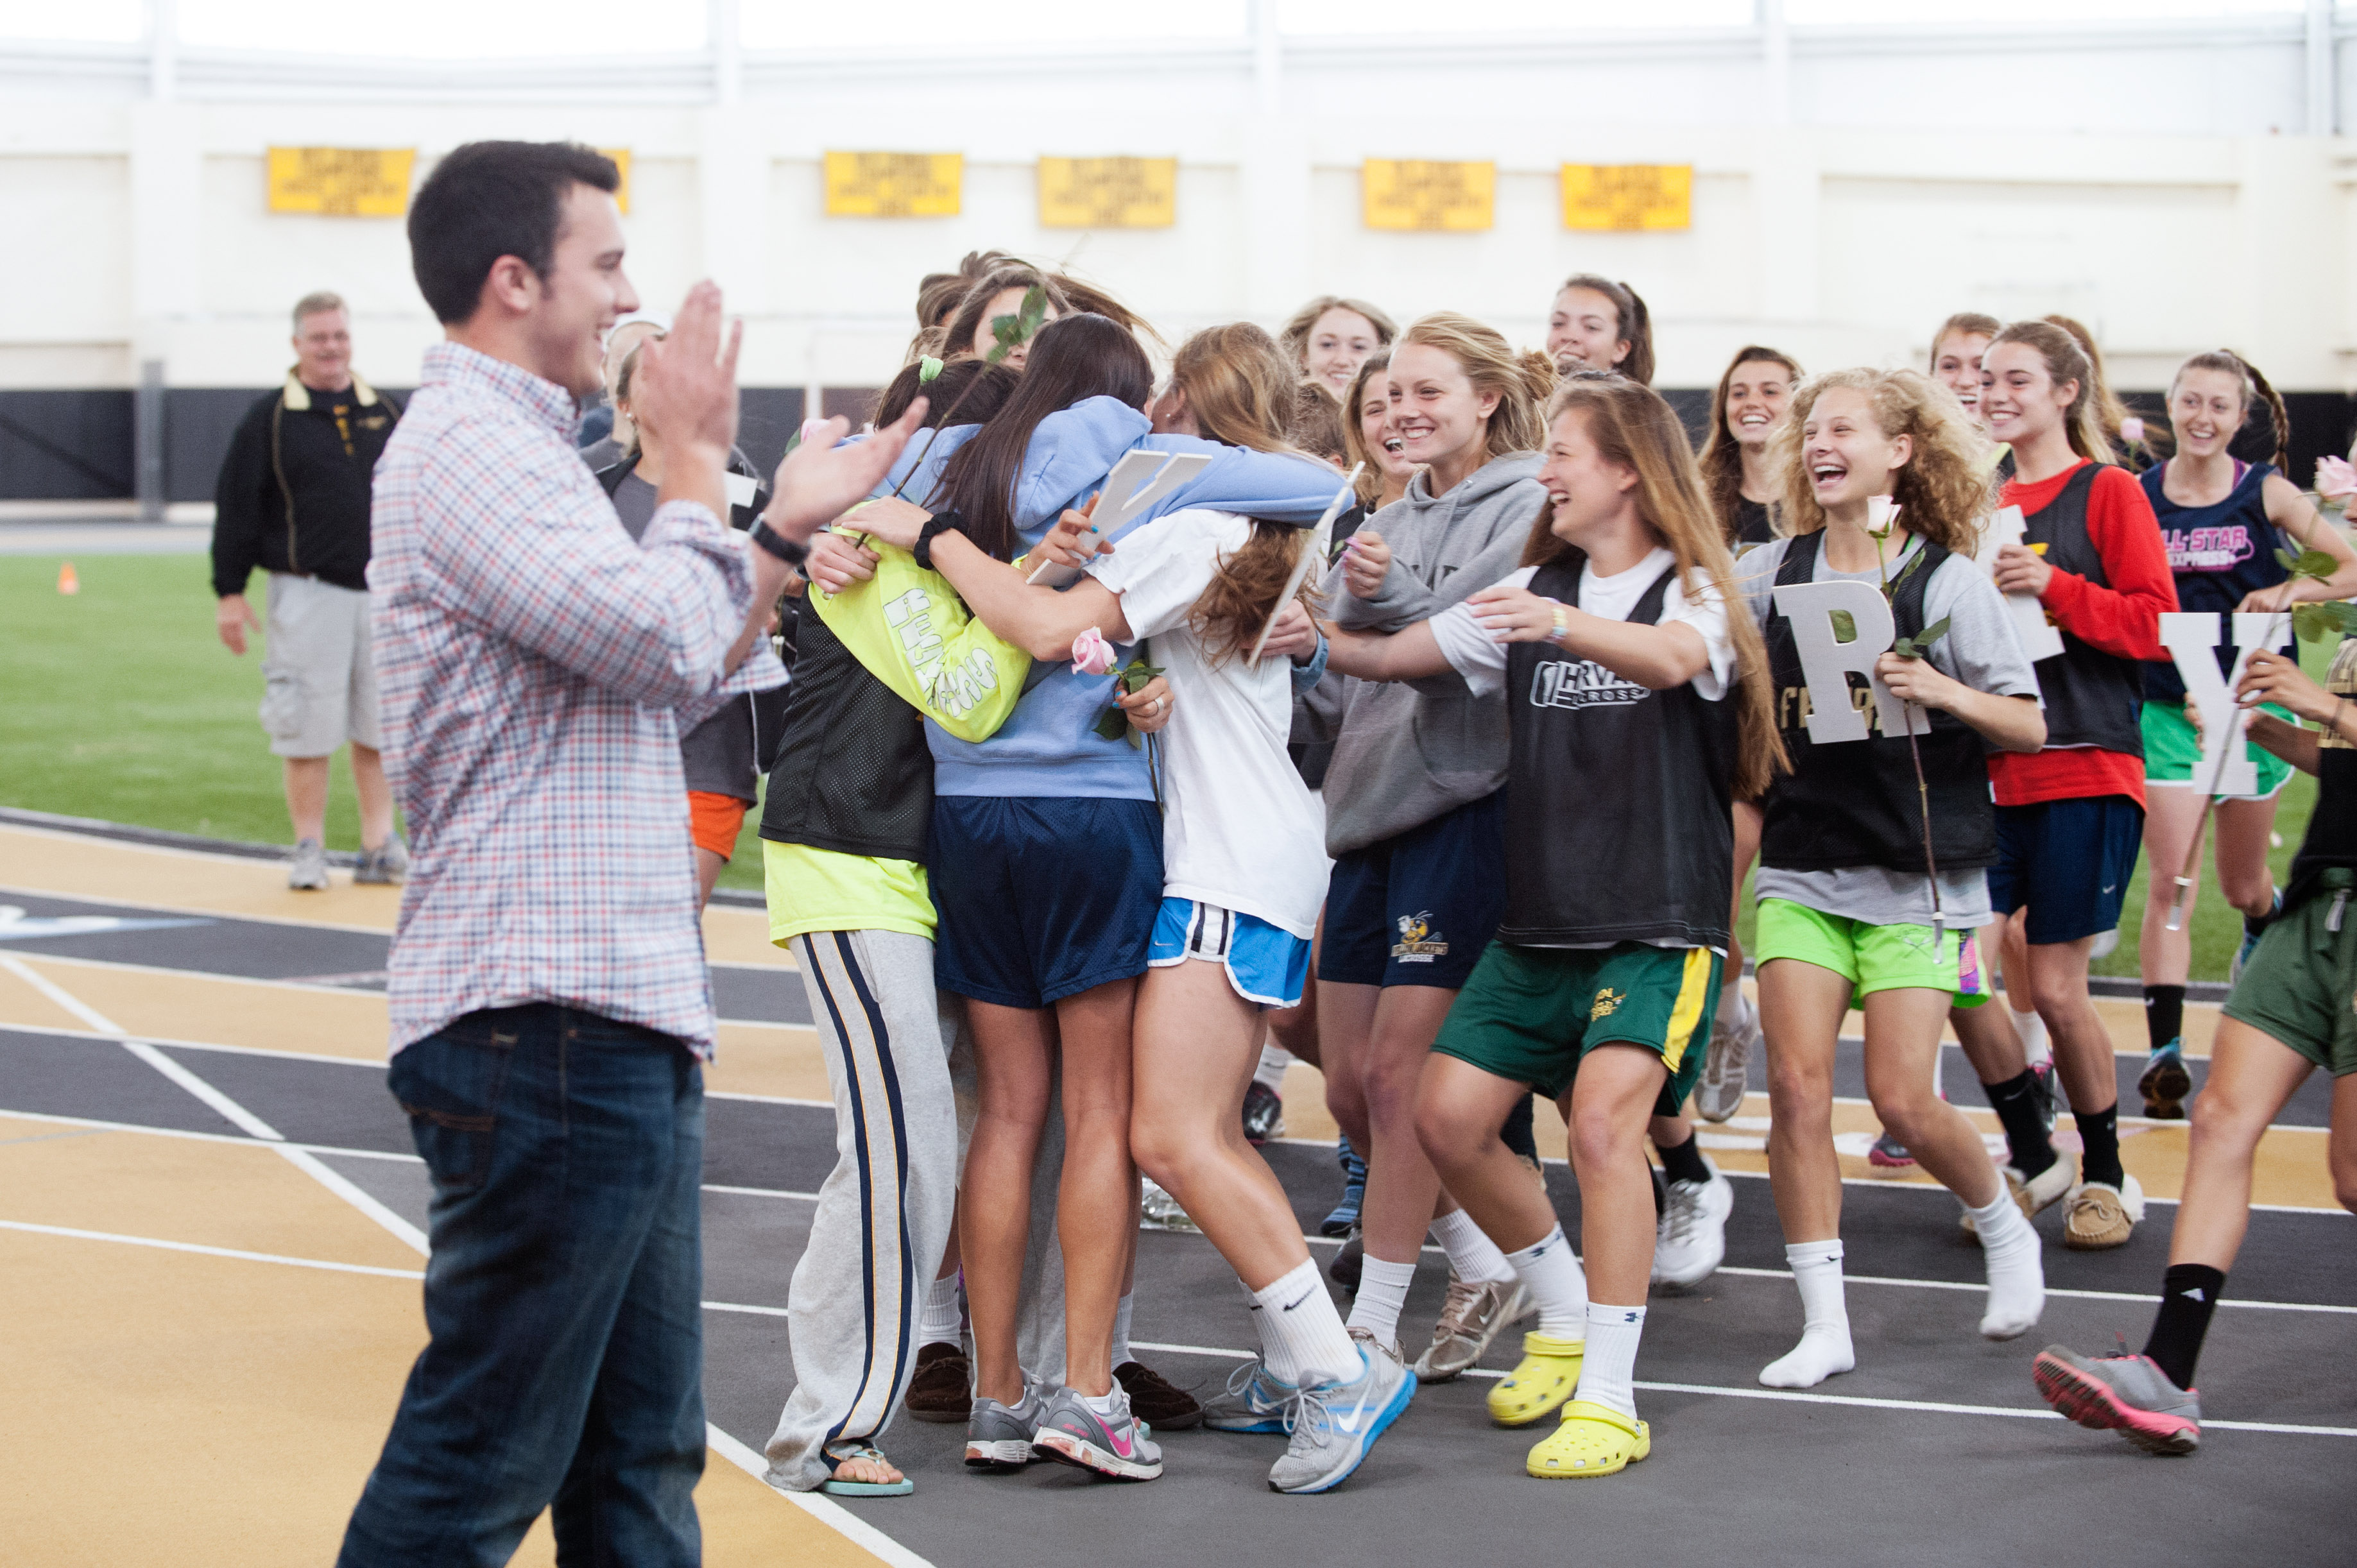 Image 16 of Marriage Proposal at Lacrosse Practice